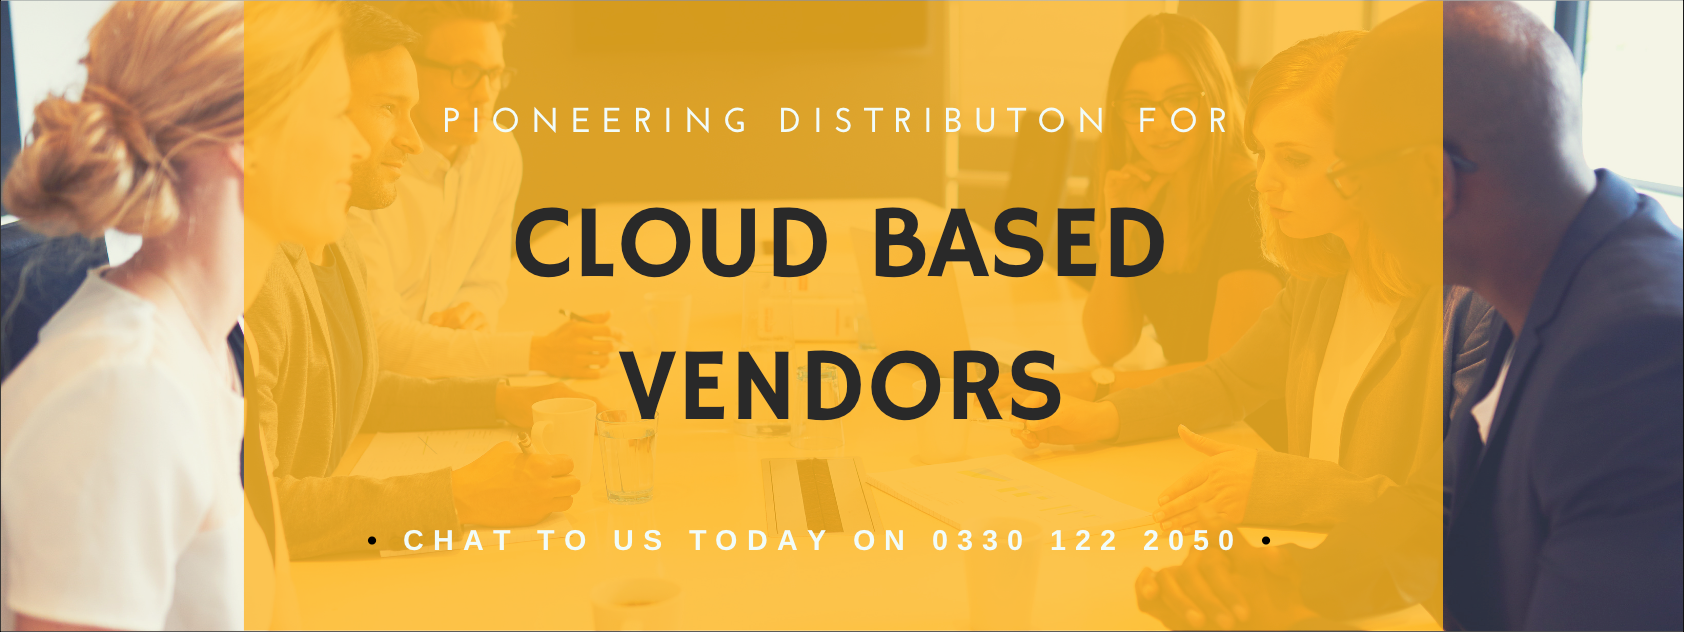 Pioneering Distribution for Cloud Based Vendors